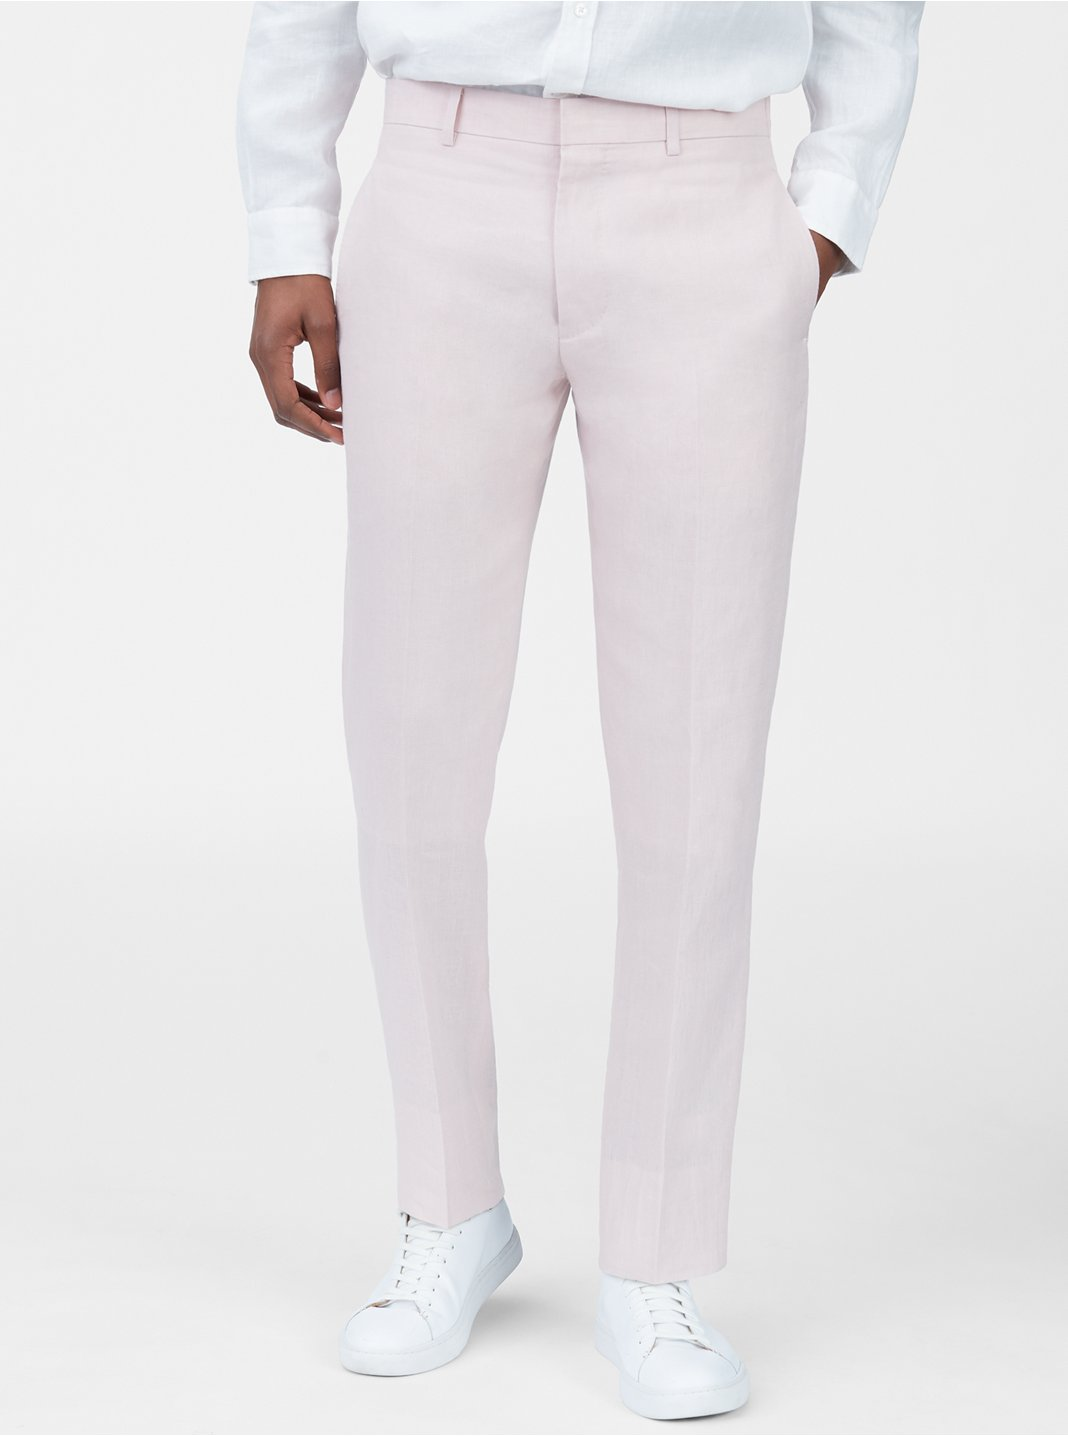 클럽 모나코 맨 Grant 리넨 팬츠 Club Monaco Grant Linen Trouser,Light Pink